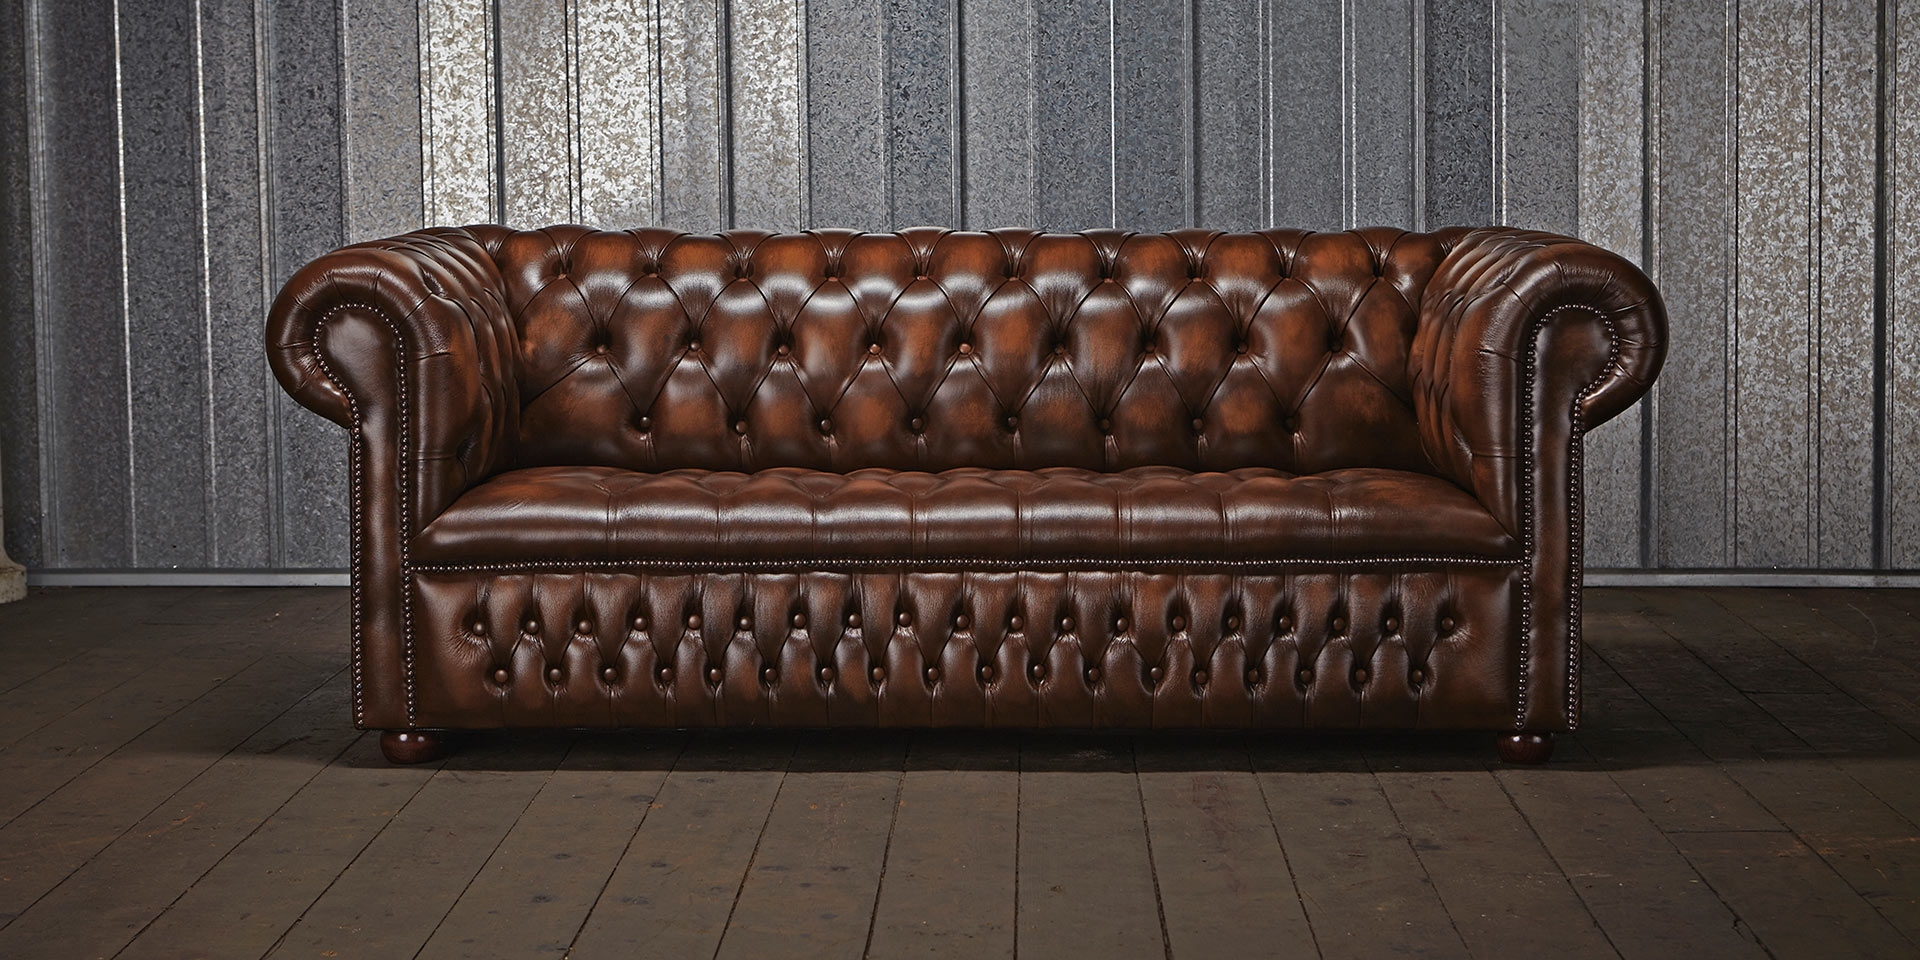 Sofas Center Vintage Chesterfield Sofa Innovation Oldschool Pertaining To Vintage Chesterfield Sofas (Image 6 of 15)